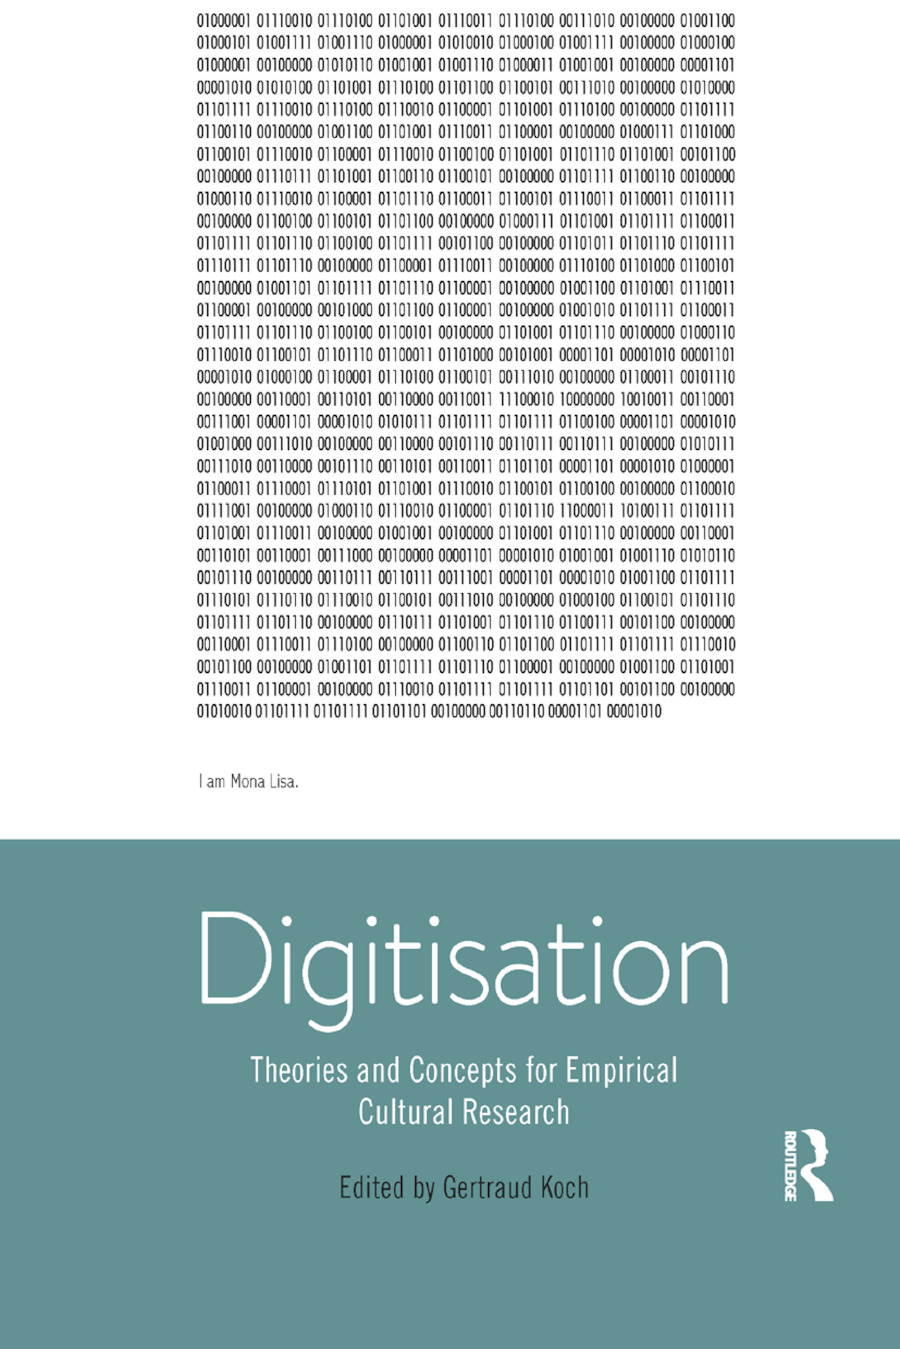 Digitisation: Theories and Concepts for Empirical Cultural Research book cover